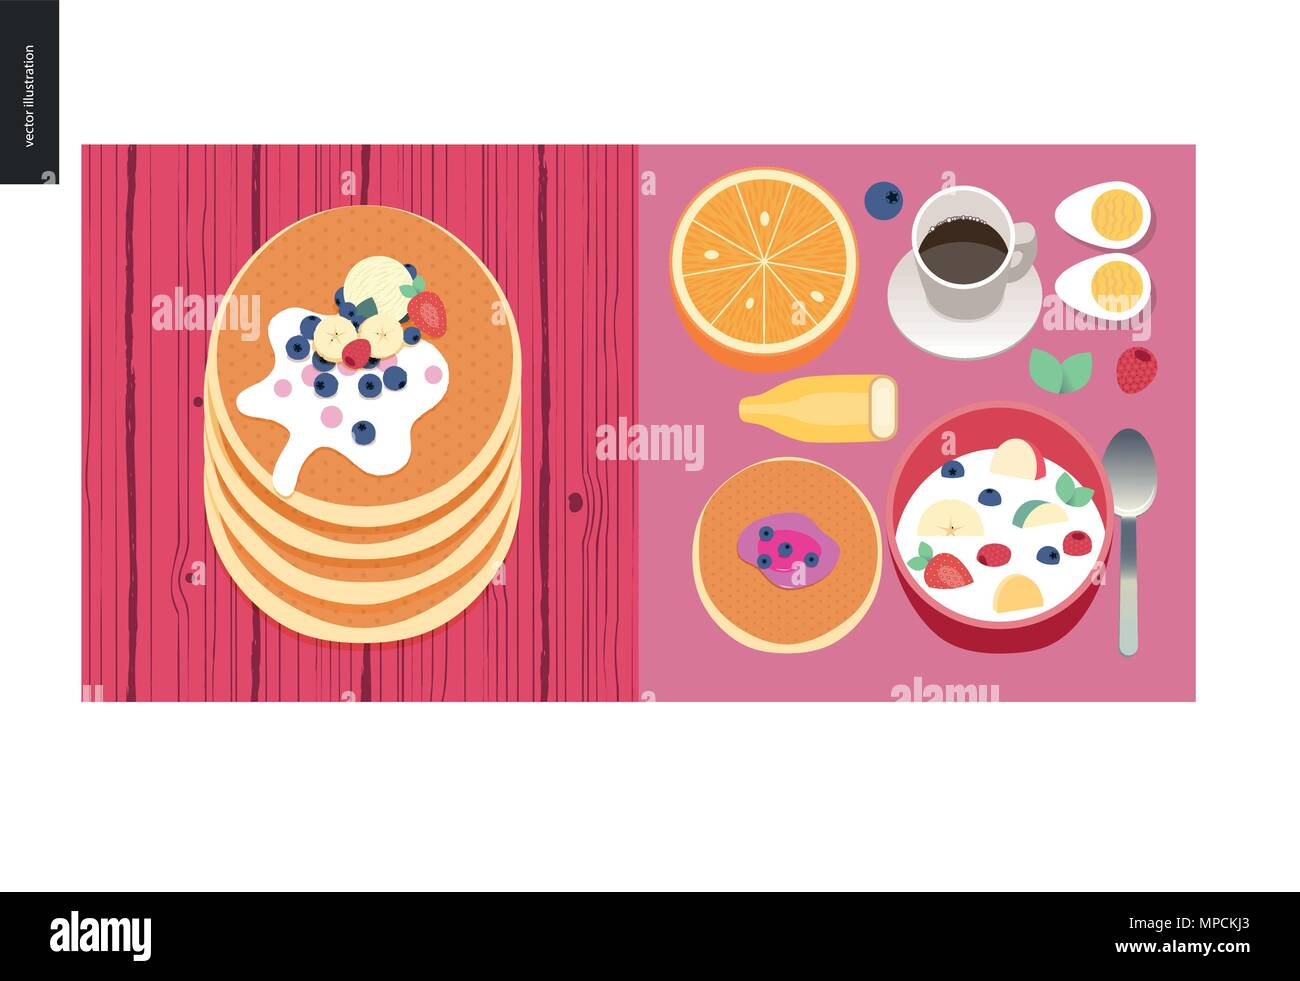 Simple things - meal - flat cartoon vector illustration of set of breakfast meal with coffee, fruits, eggs, pancakes and cereal, stack of pancakes wit - Stock Vector